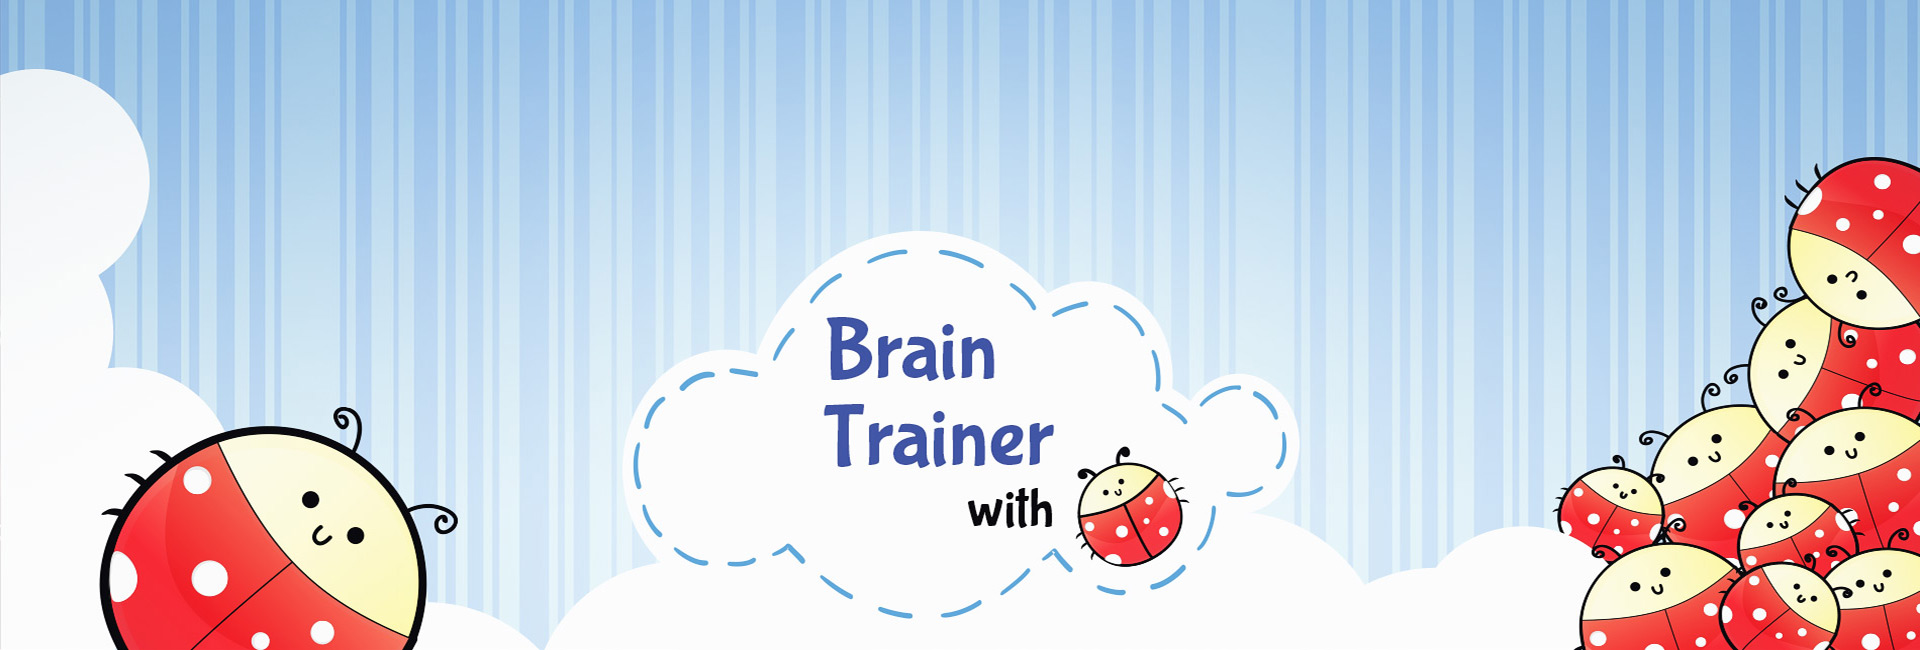 Brain Trainer with Ladybug